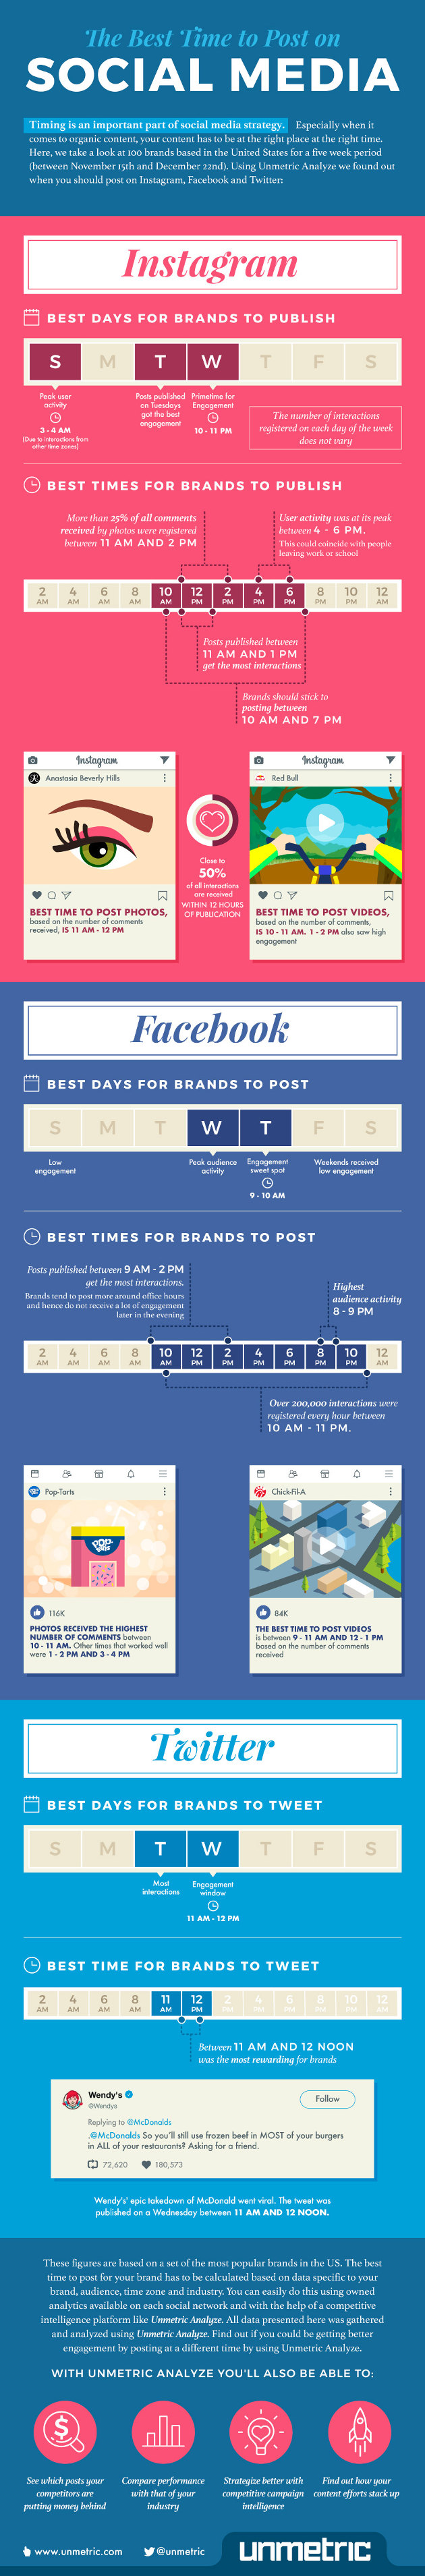 When is the best time to post on social media? [Infographic]